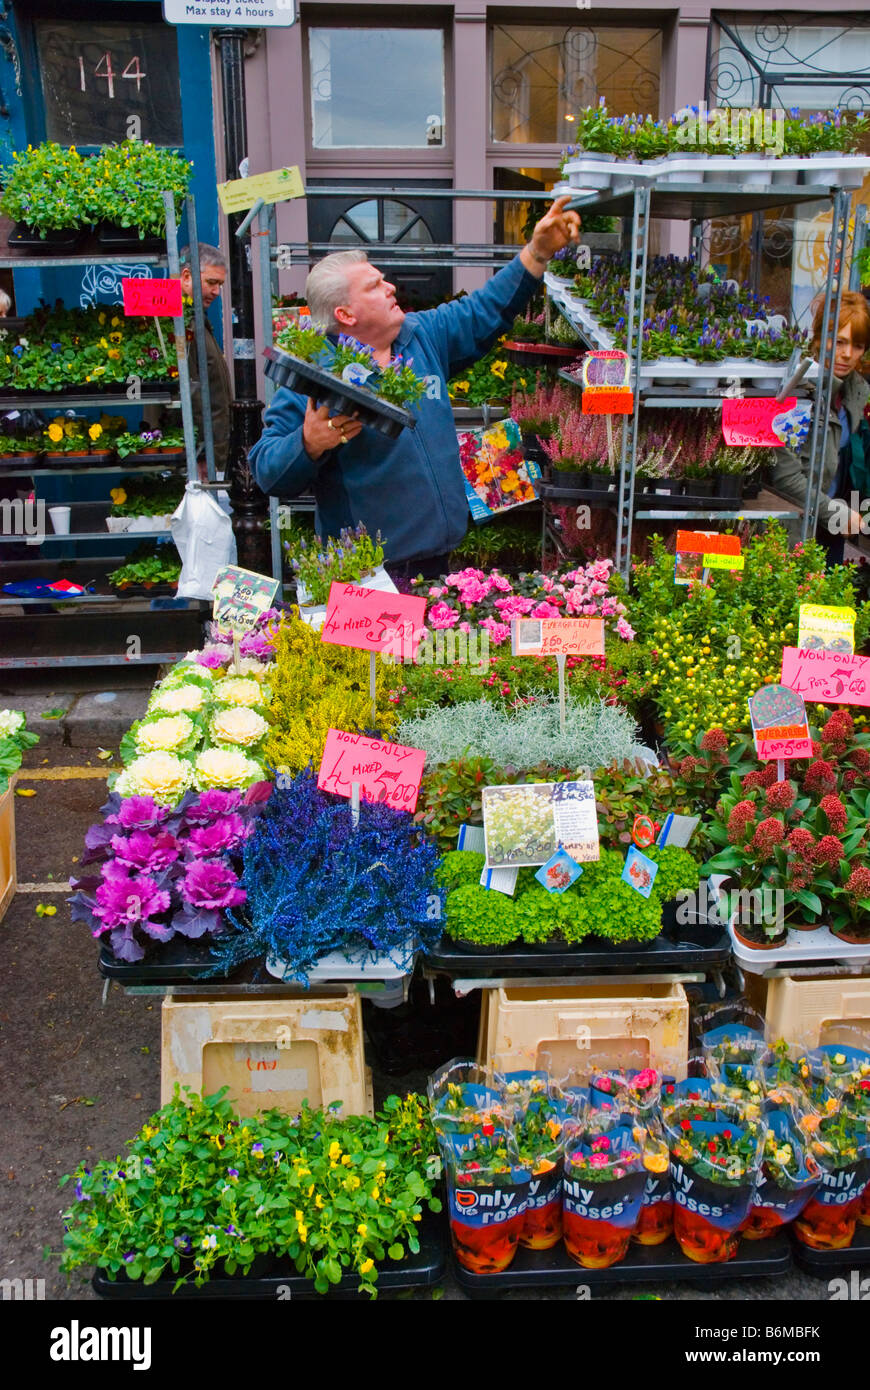 Columbia Road flower market during the Sunday market day in East London England UK Stock Photo